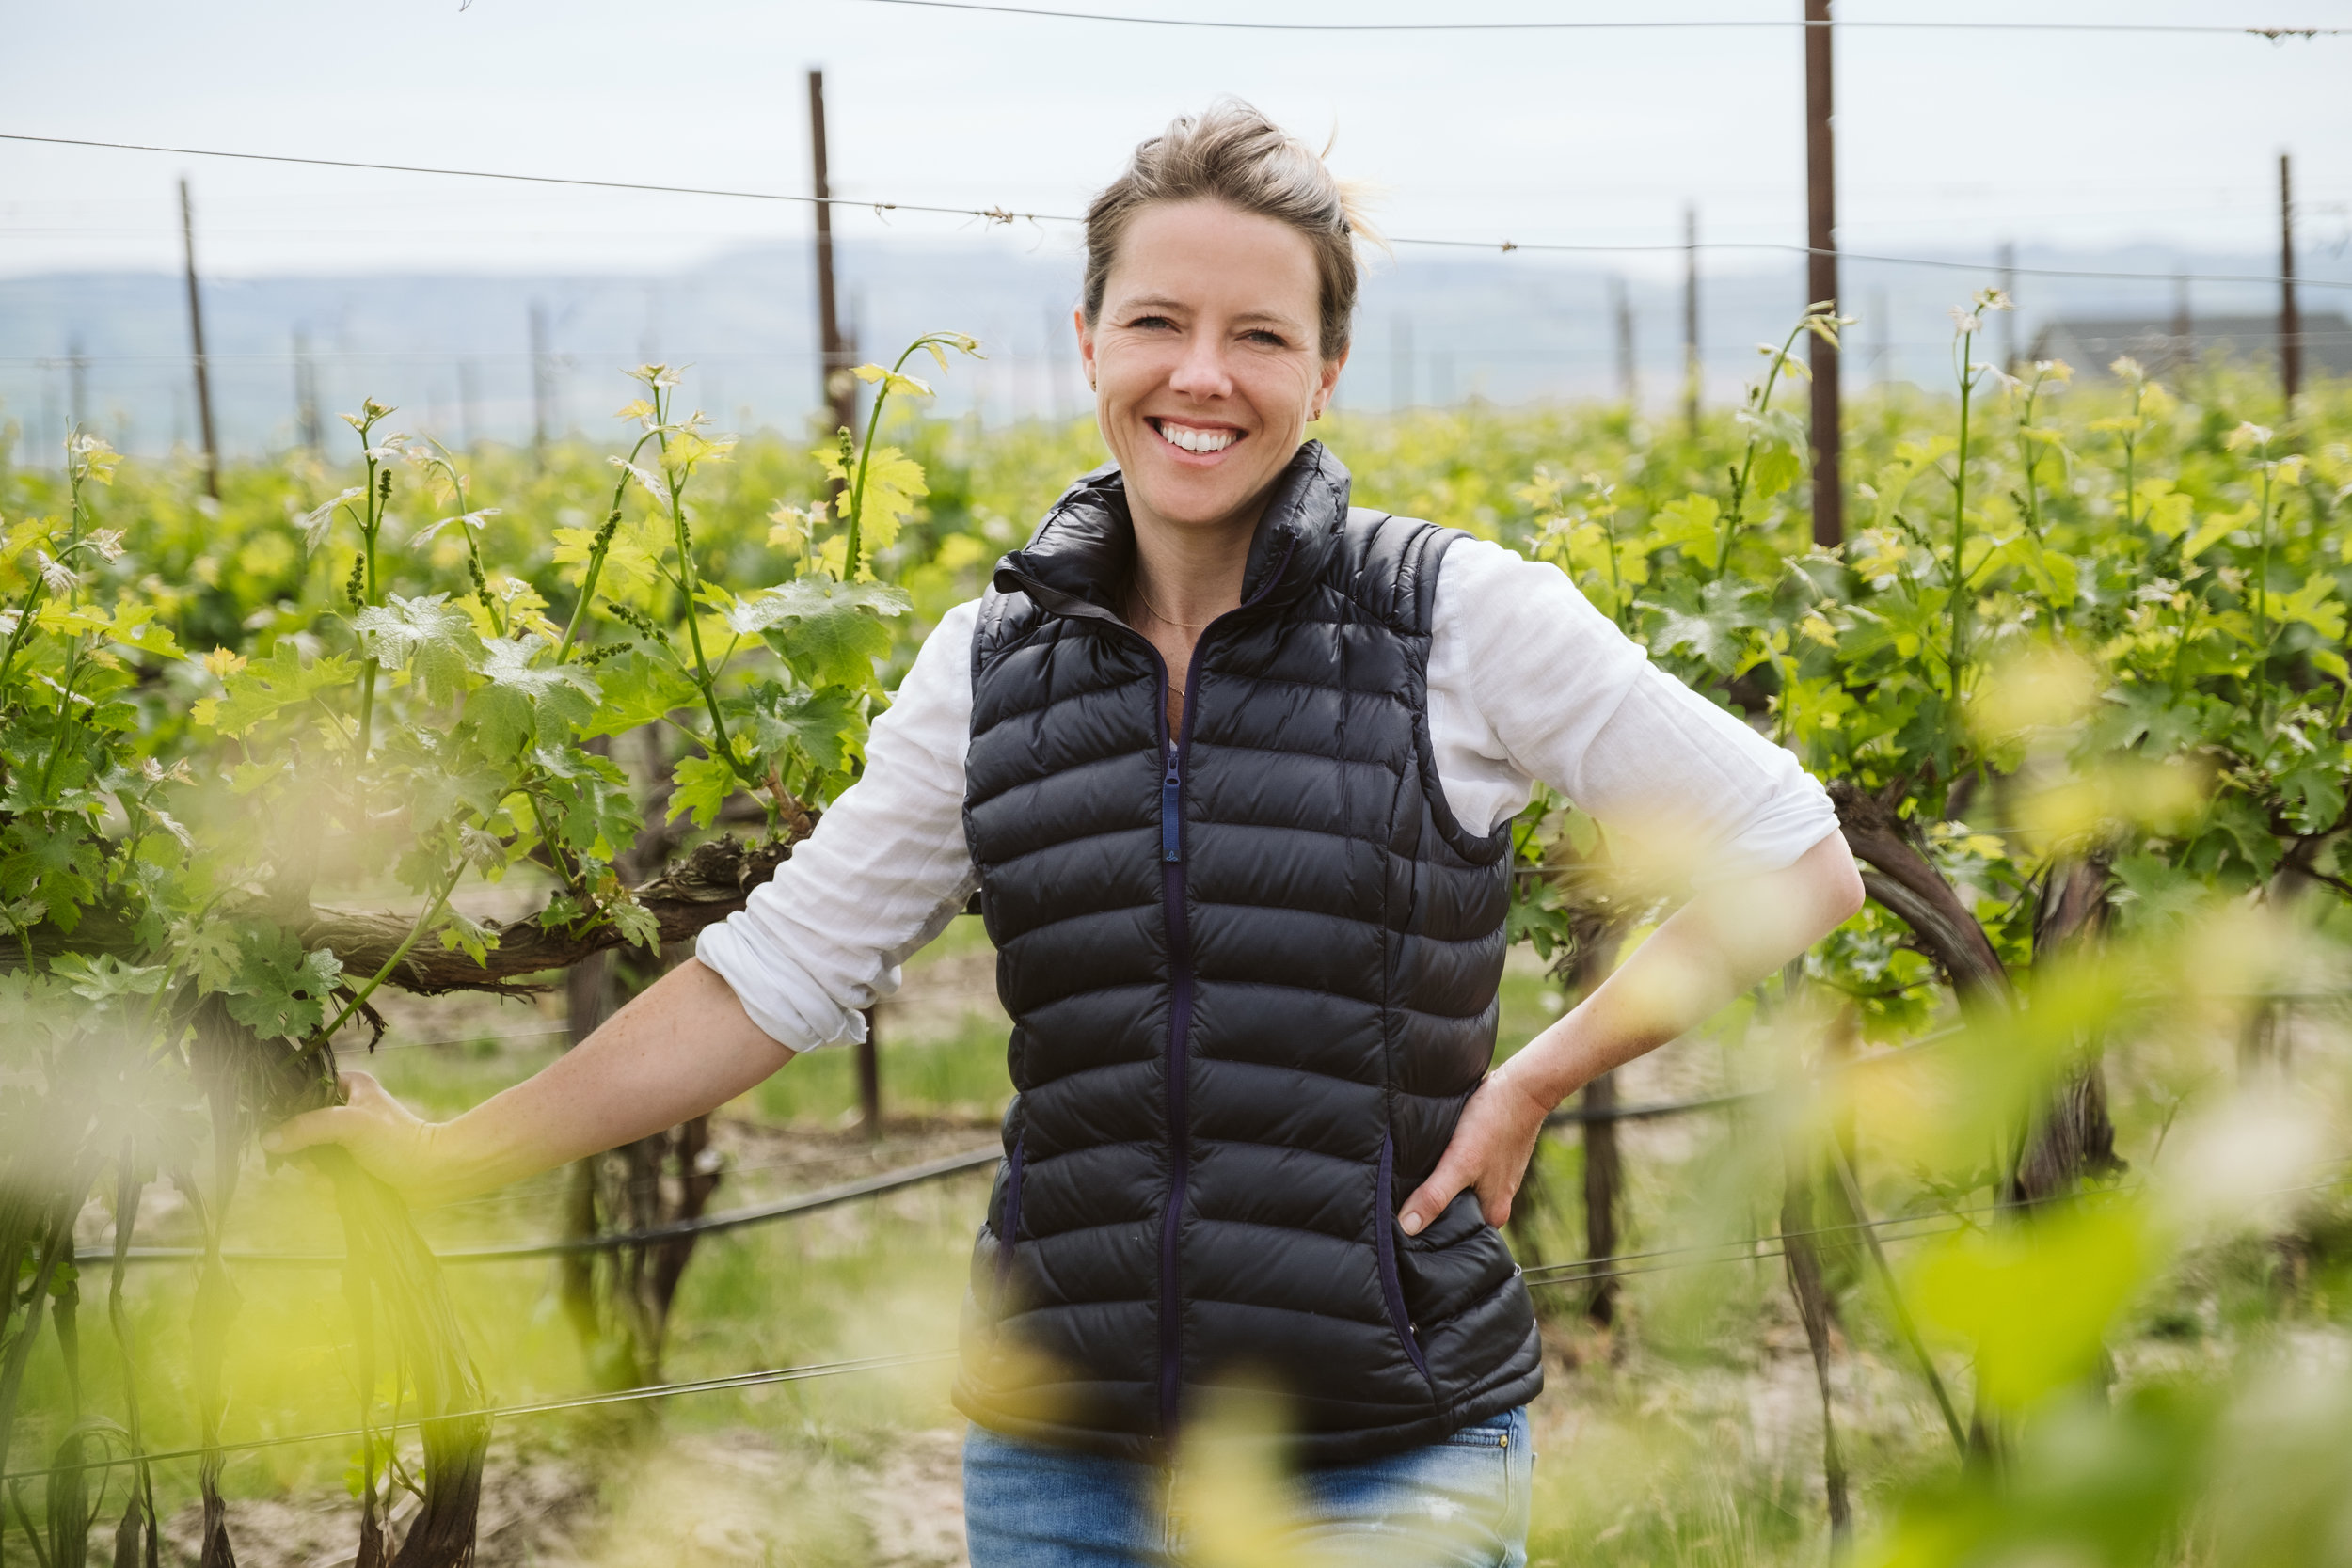 ASHLEY TROUT, 8.2.19 - Ashley has been working in wine since her freshman year of college. Today she owns a winery, Brook & Bull in Washington's Walla Walla Valley. She also started Vital Wines, a non-profit to support a free healthcare clinic in the region.